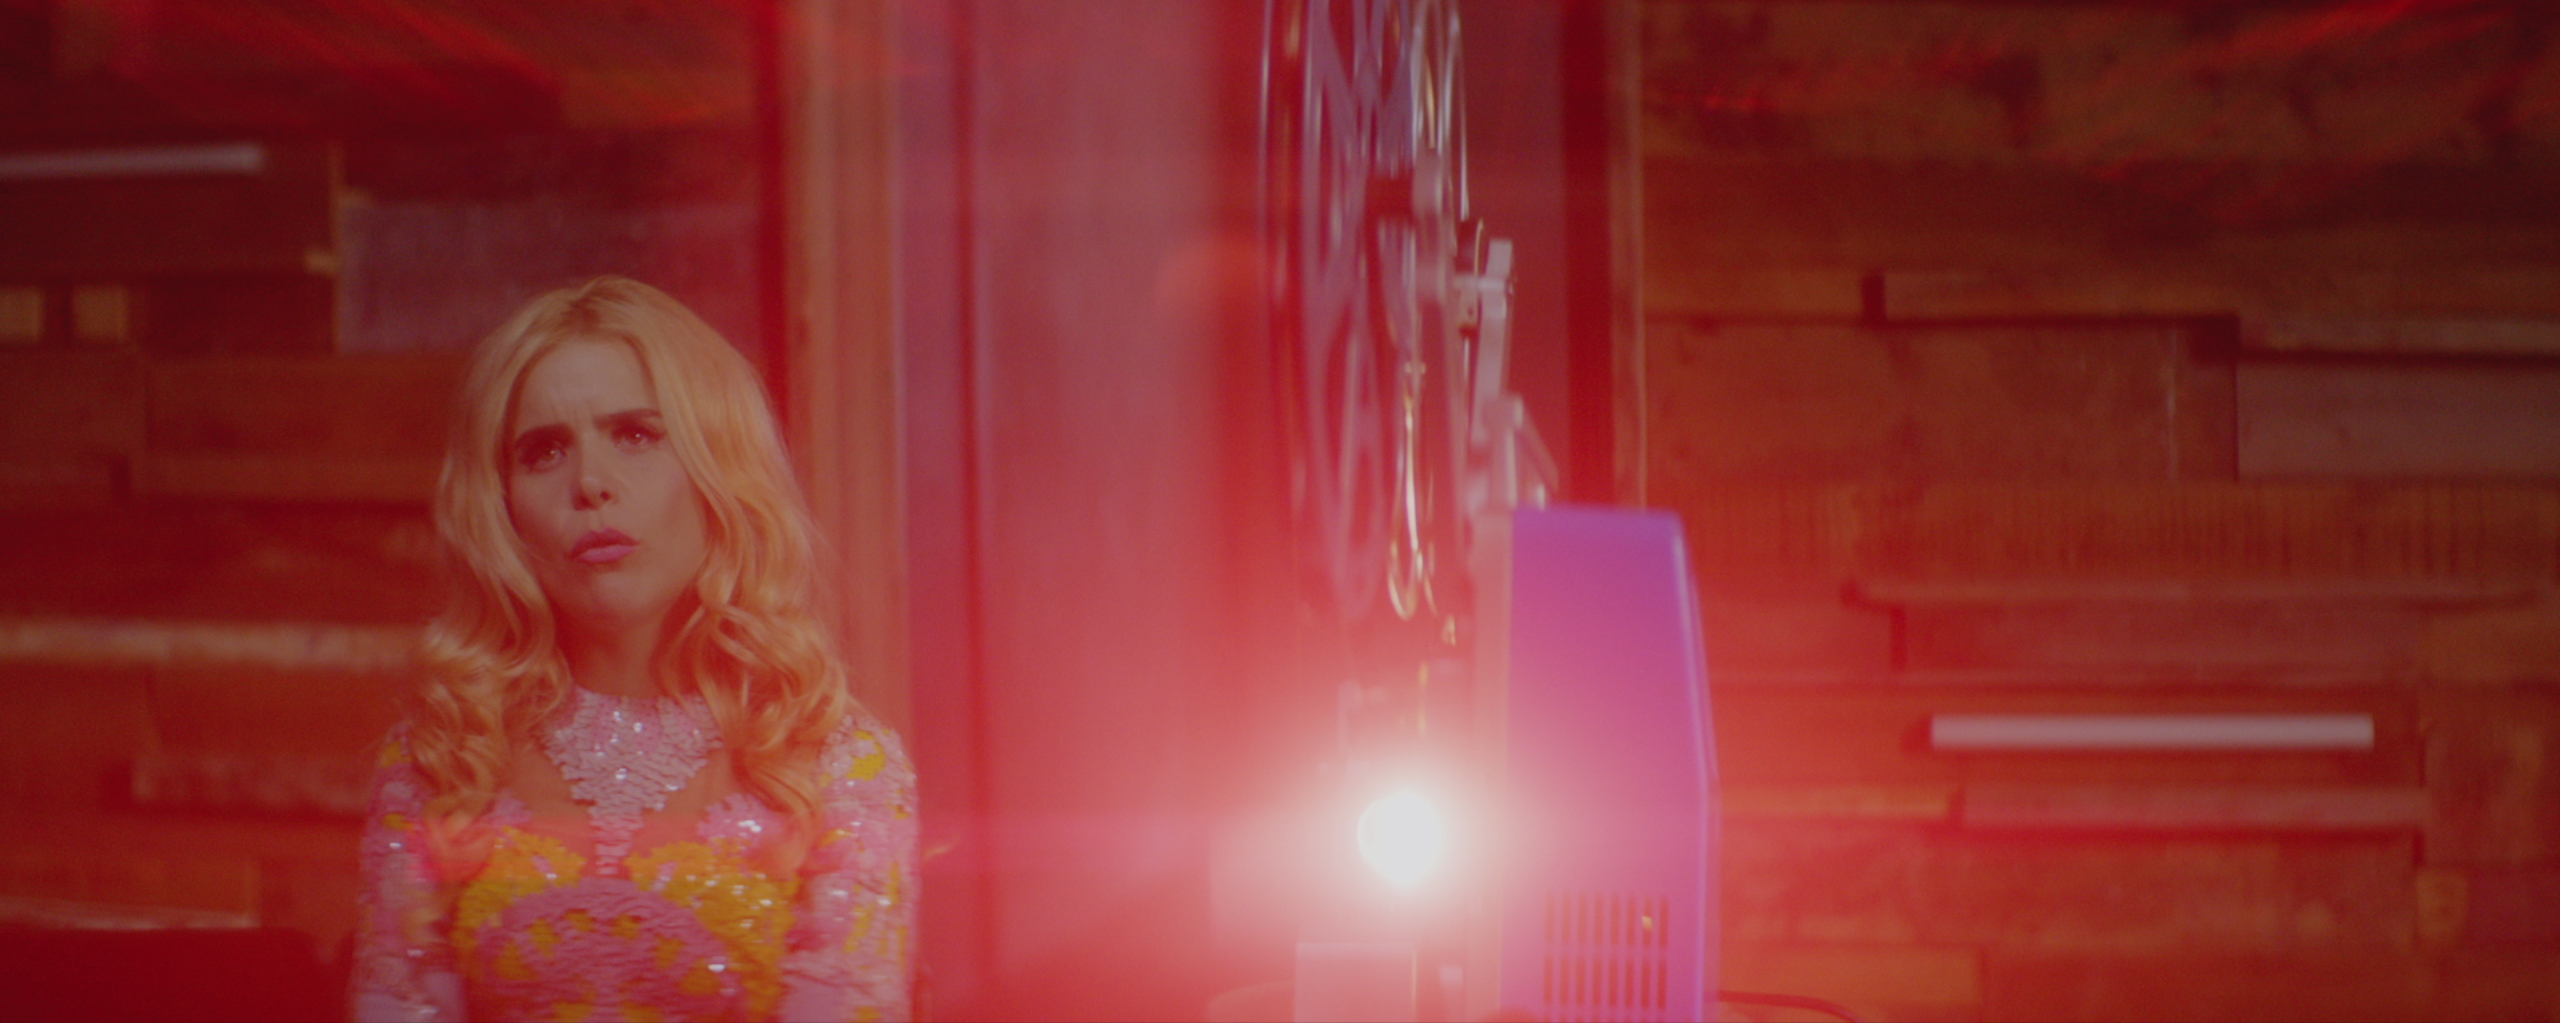 PALOMA FAITH MATTHEW BEECROFT DOP